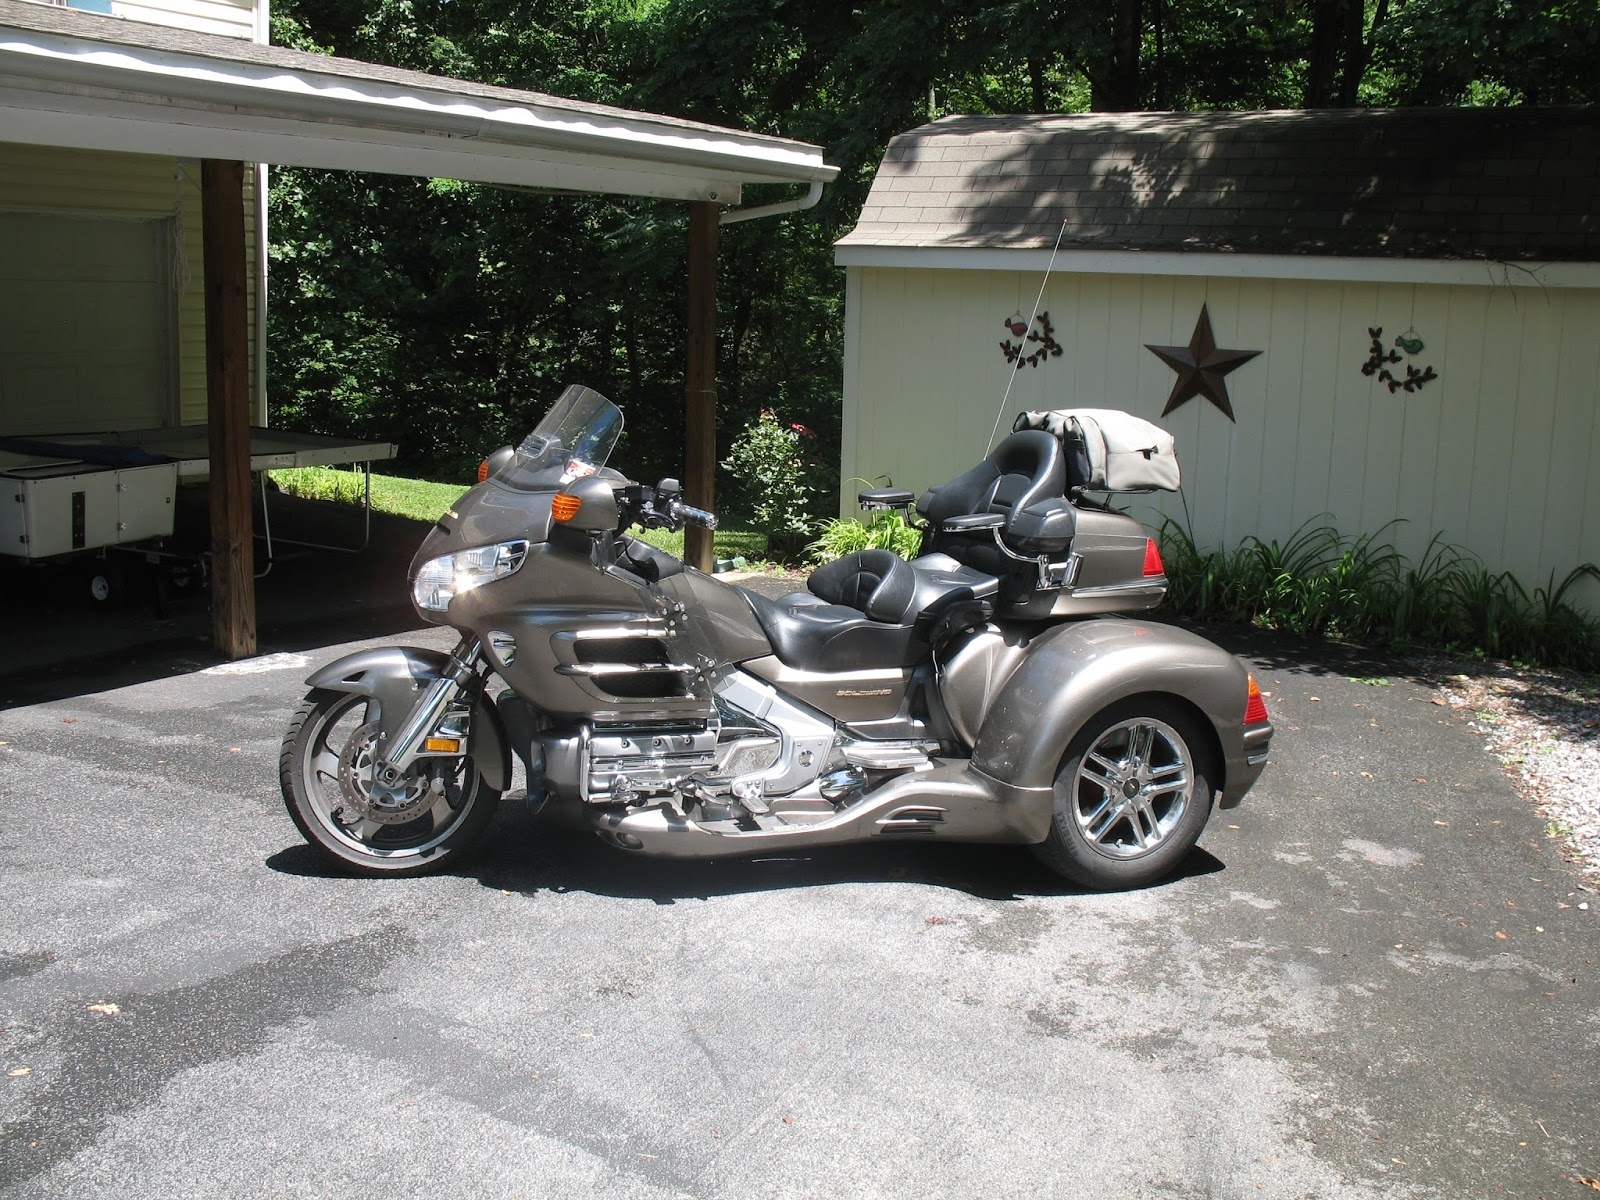 wing sale gold atvs abs used honda goldwing pin trike in mississippi for